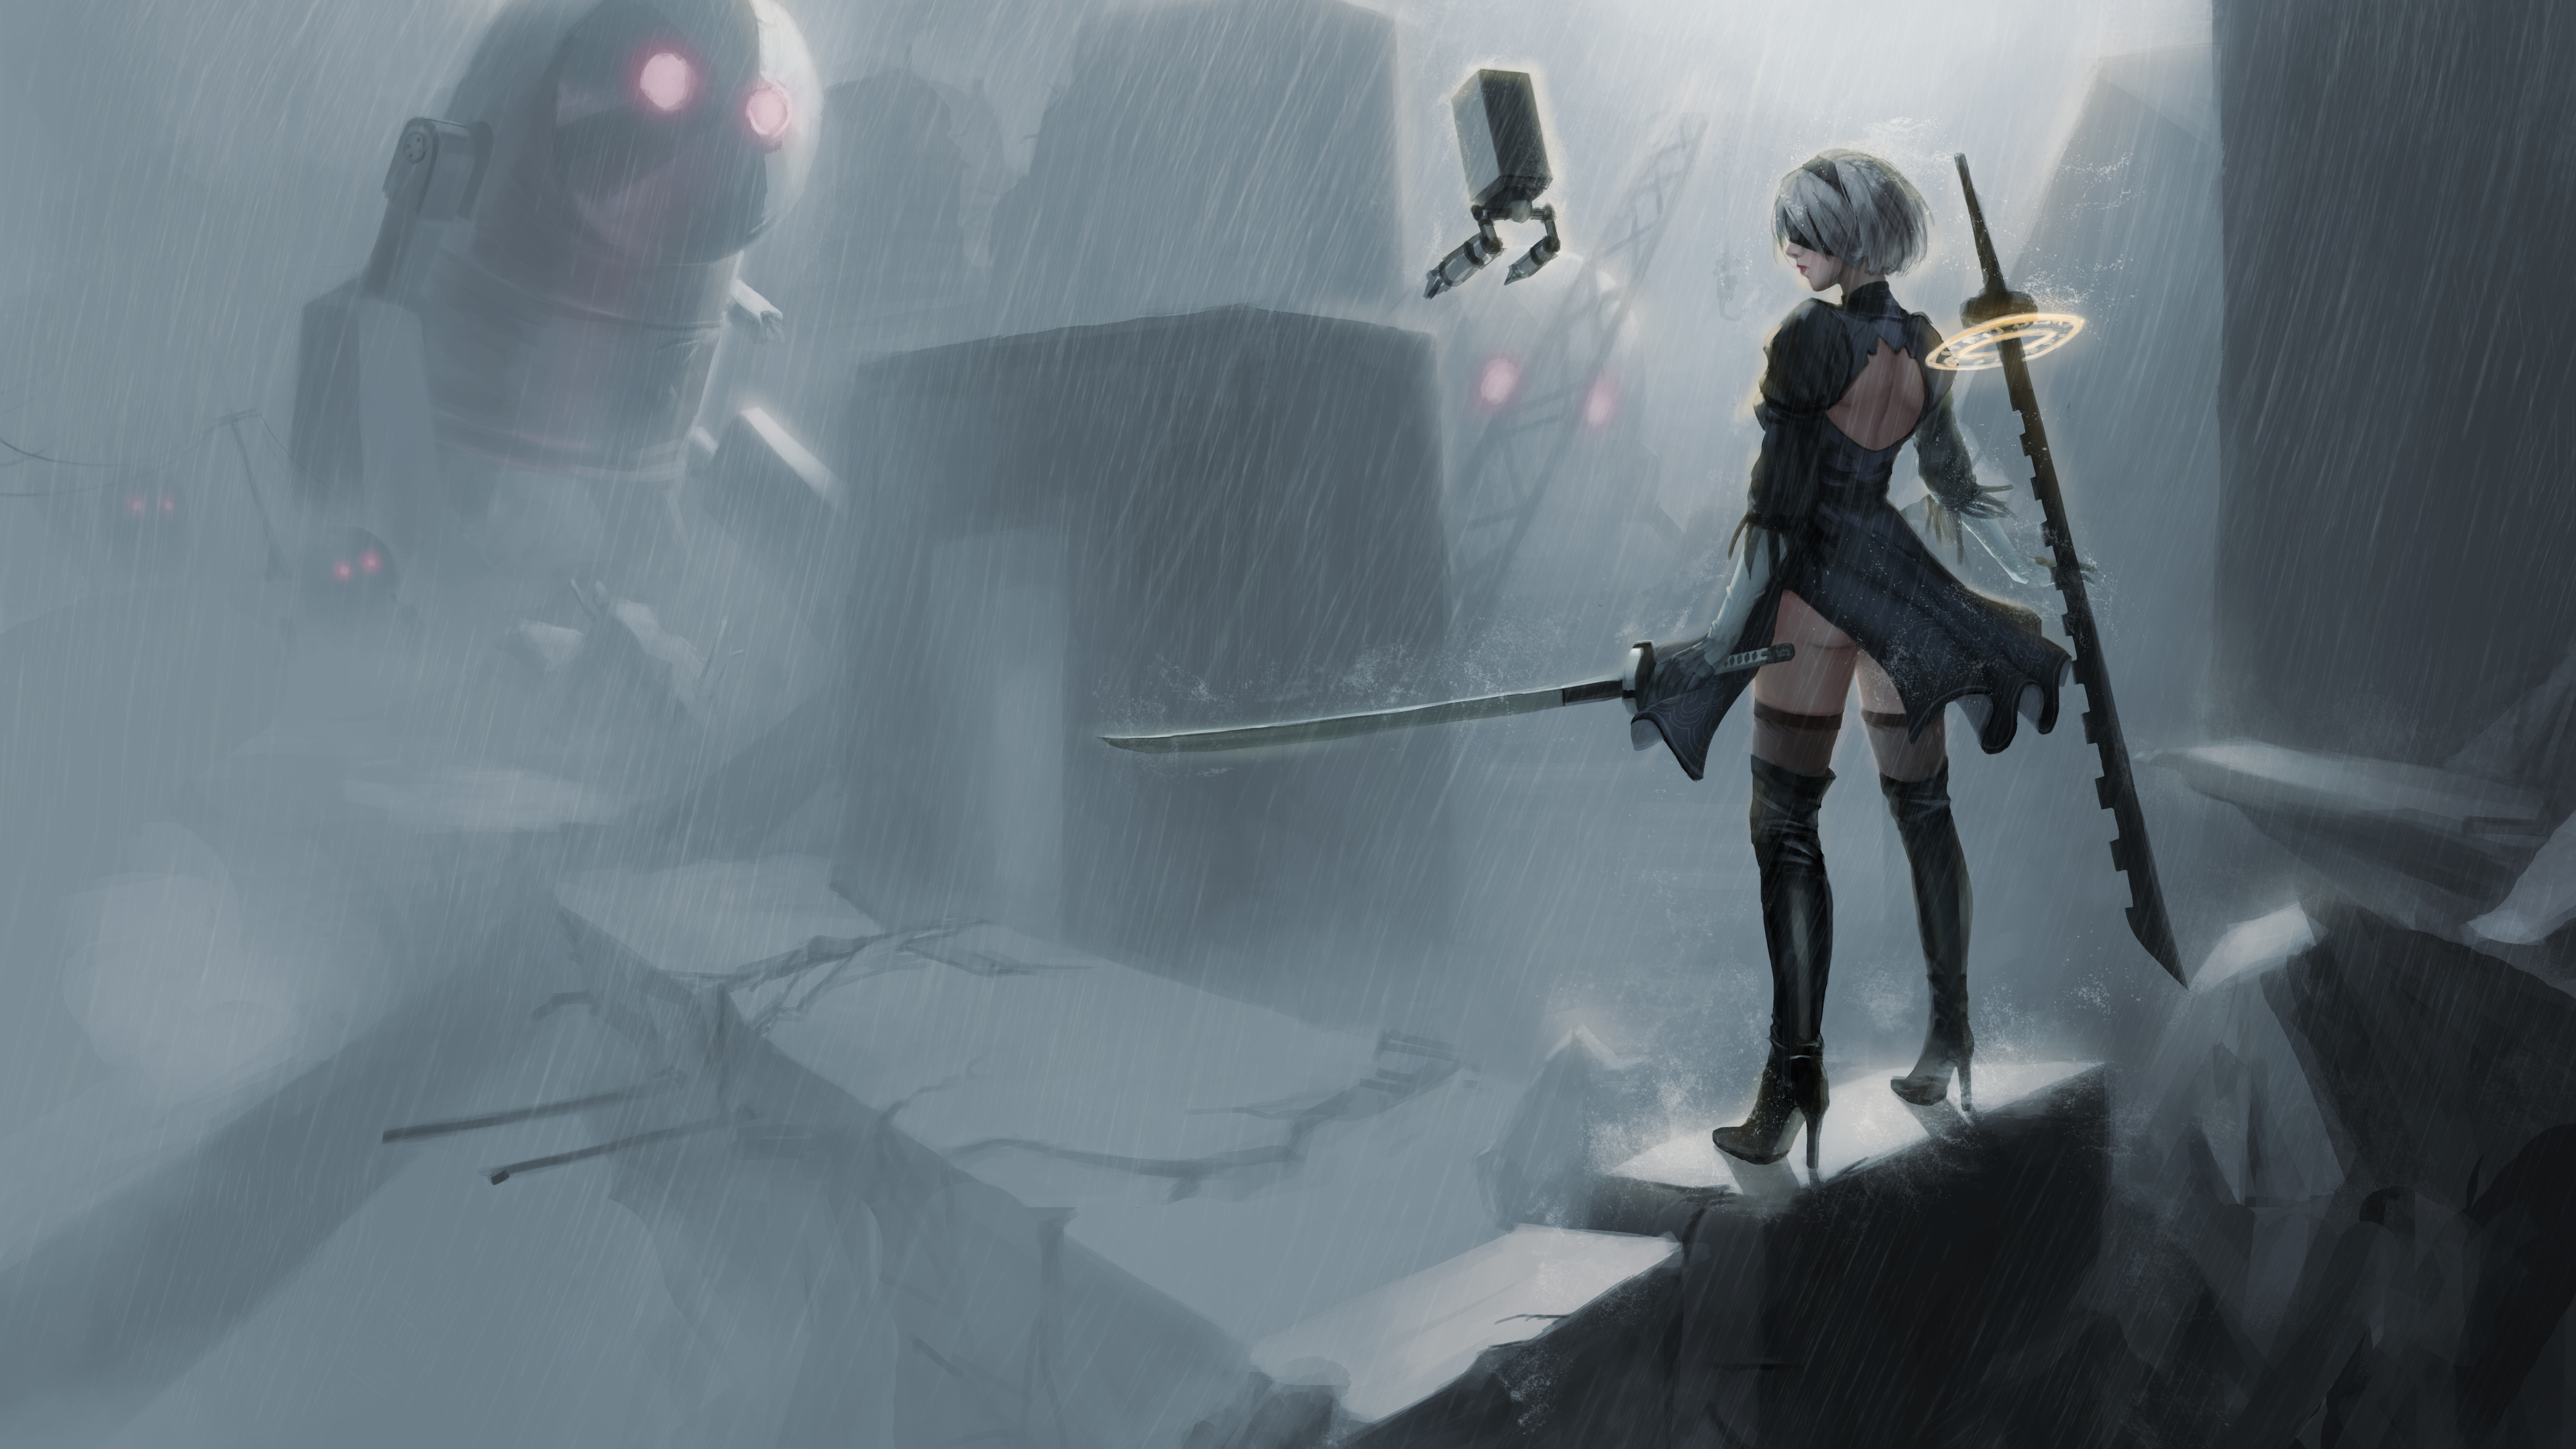 nier automata 5k 1541973675 - Nier Automata 5k - nier automata wallpapers, hd-wallpapers, games wallpapers, artwork wallpapers, 5k wallpapers, 4k-wallpapers, 2017 games wallpapers